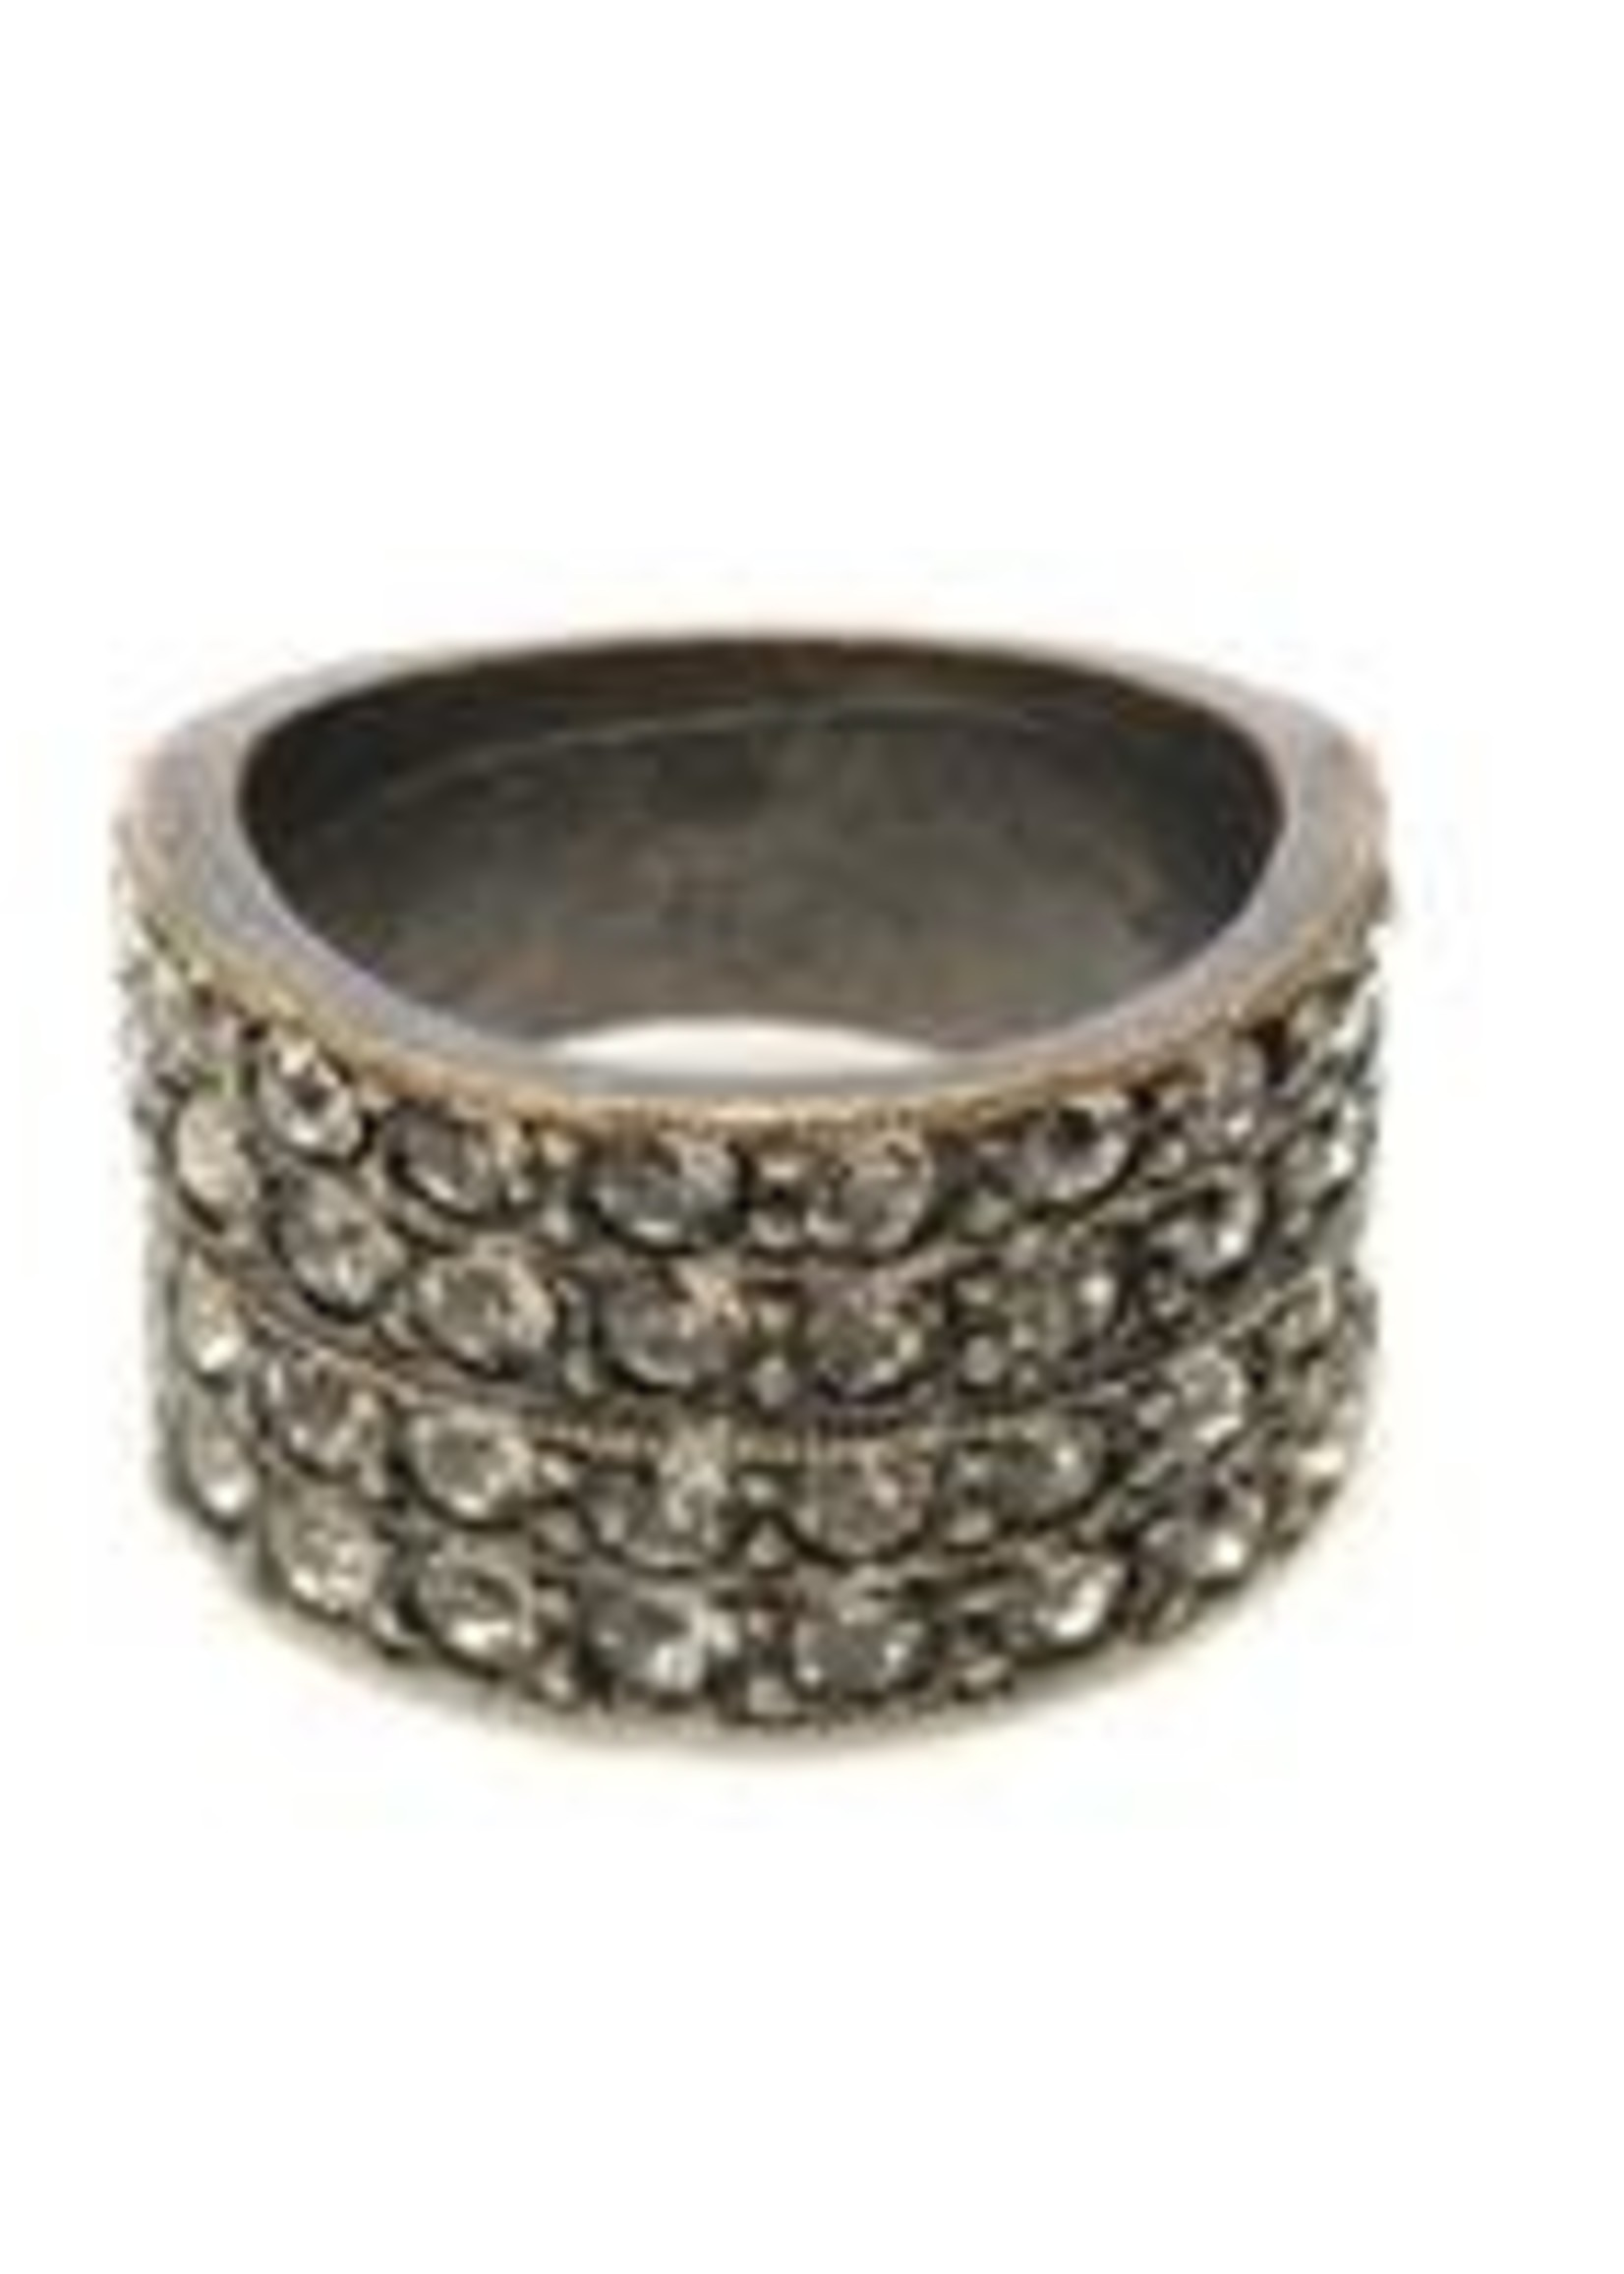 Rebel Designs Rebel - 4 Row Band Ring (R11 - AT)